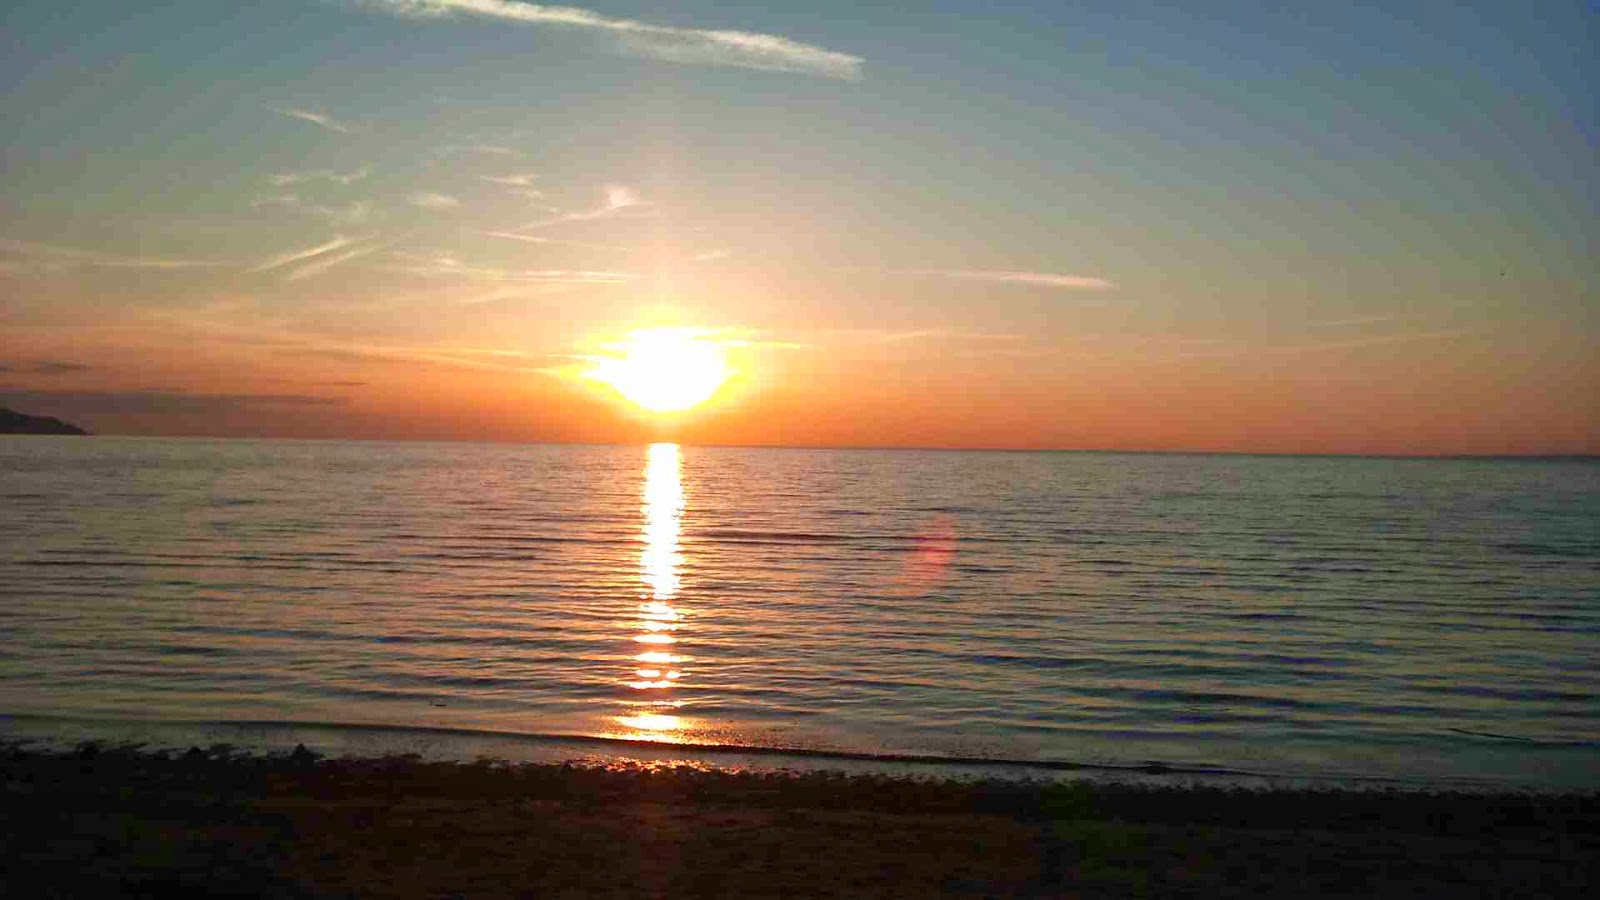 baltic sea, vacation, relaxation, investing